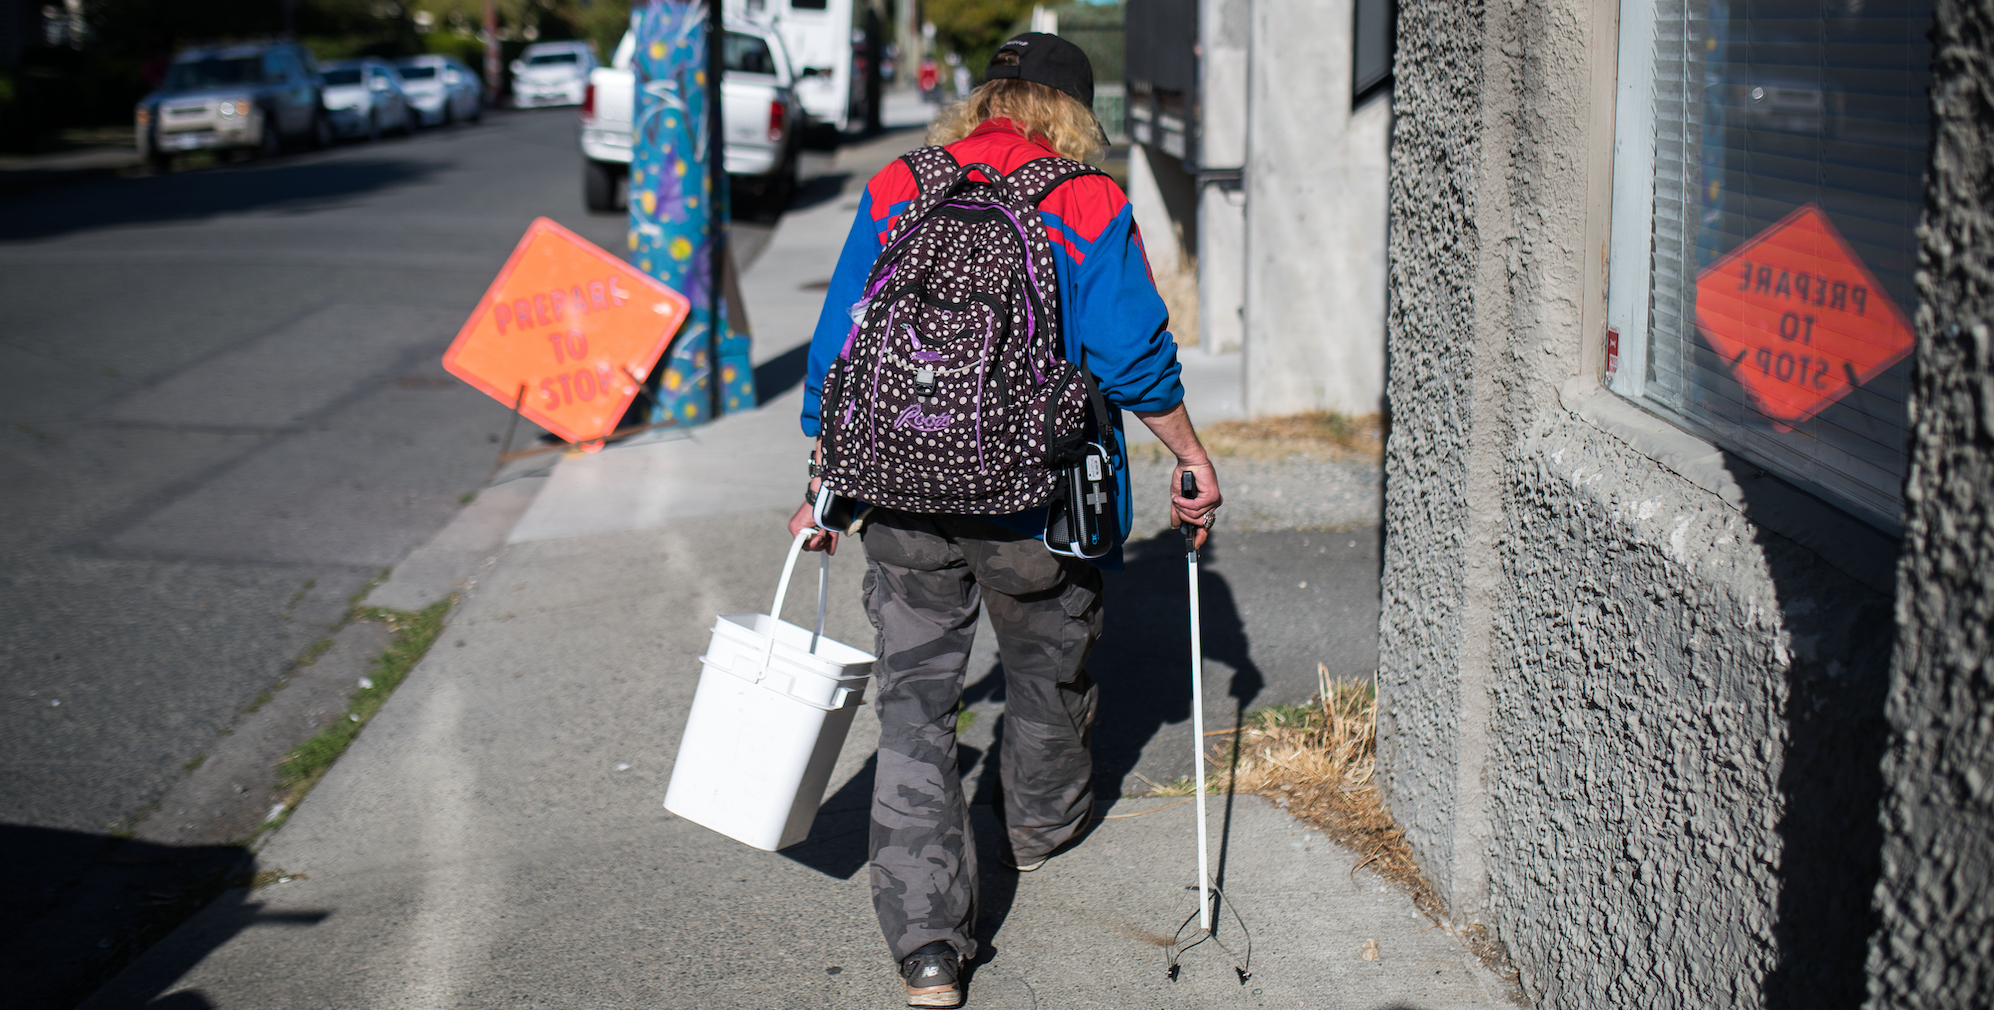 Meet the Rig Diggers: Current and former addicts who collect used needles in Victoria